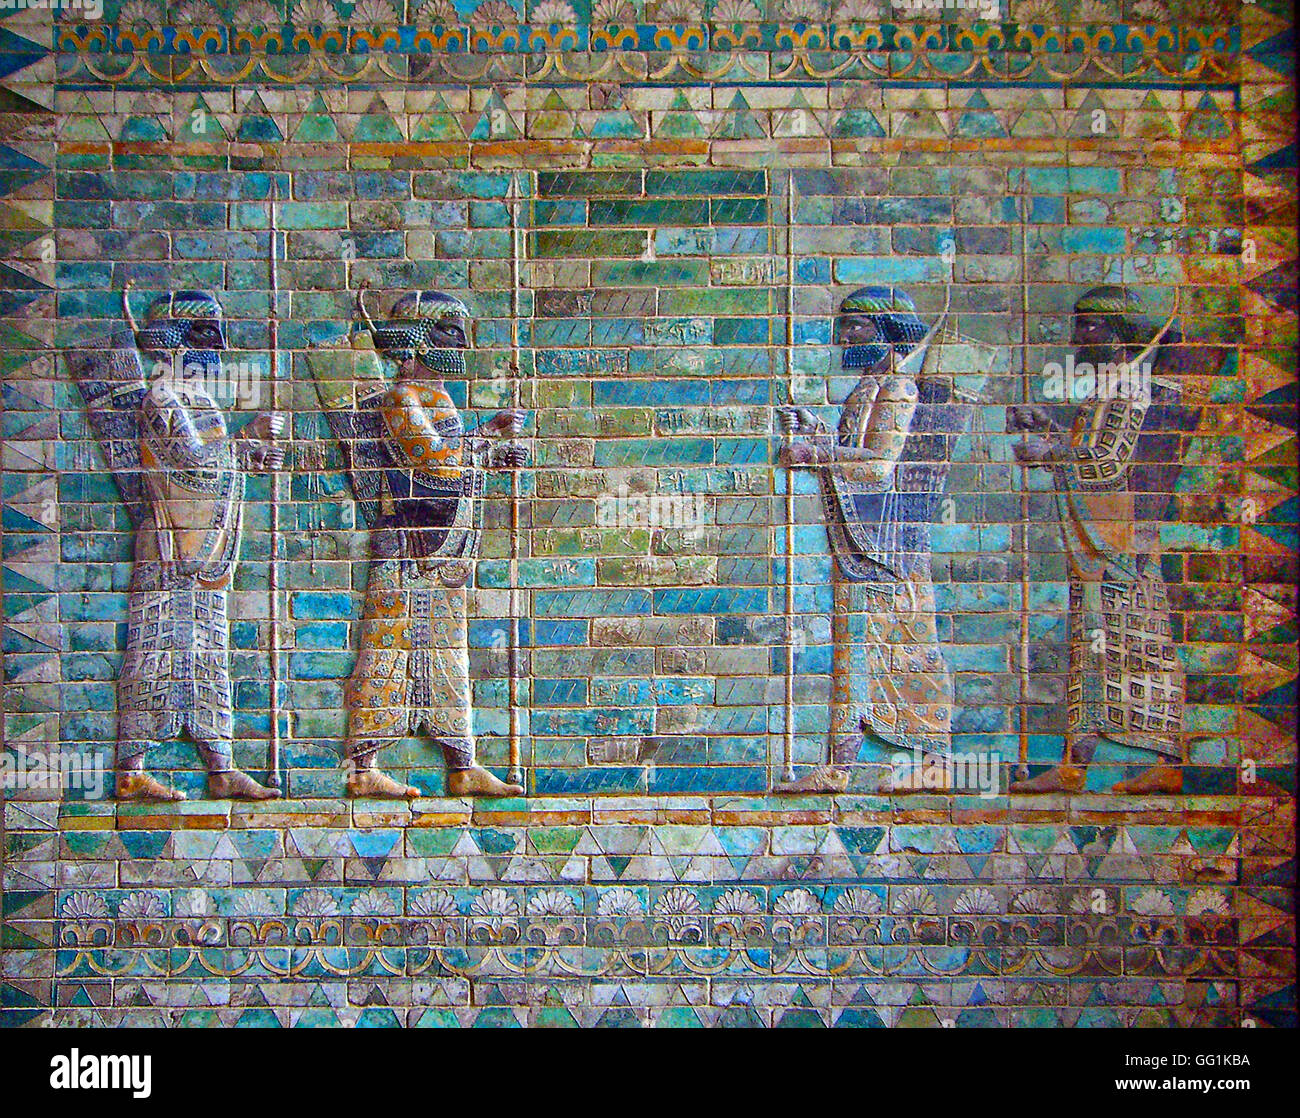 5926. ELAMITE GUARD OF THE PERSIAN ARMY DEPICTED IN FULL SPLENDOR. GLAZED BRICK FROM THE ACHAEMENID PALACE IN SUSA - Stock Image